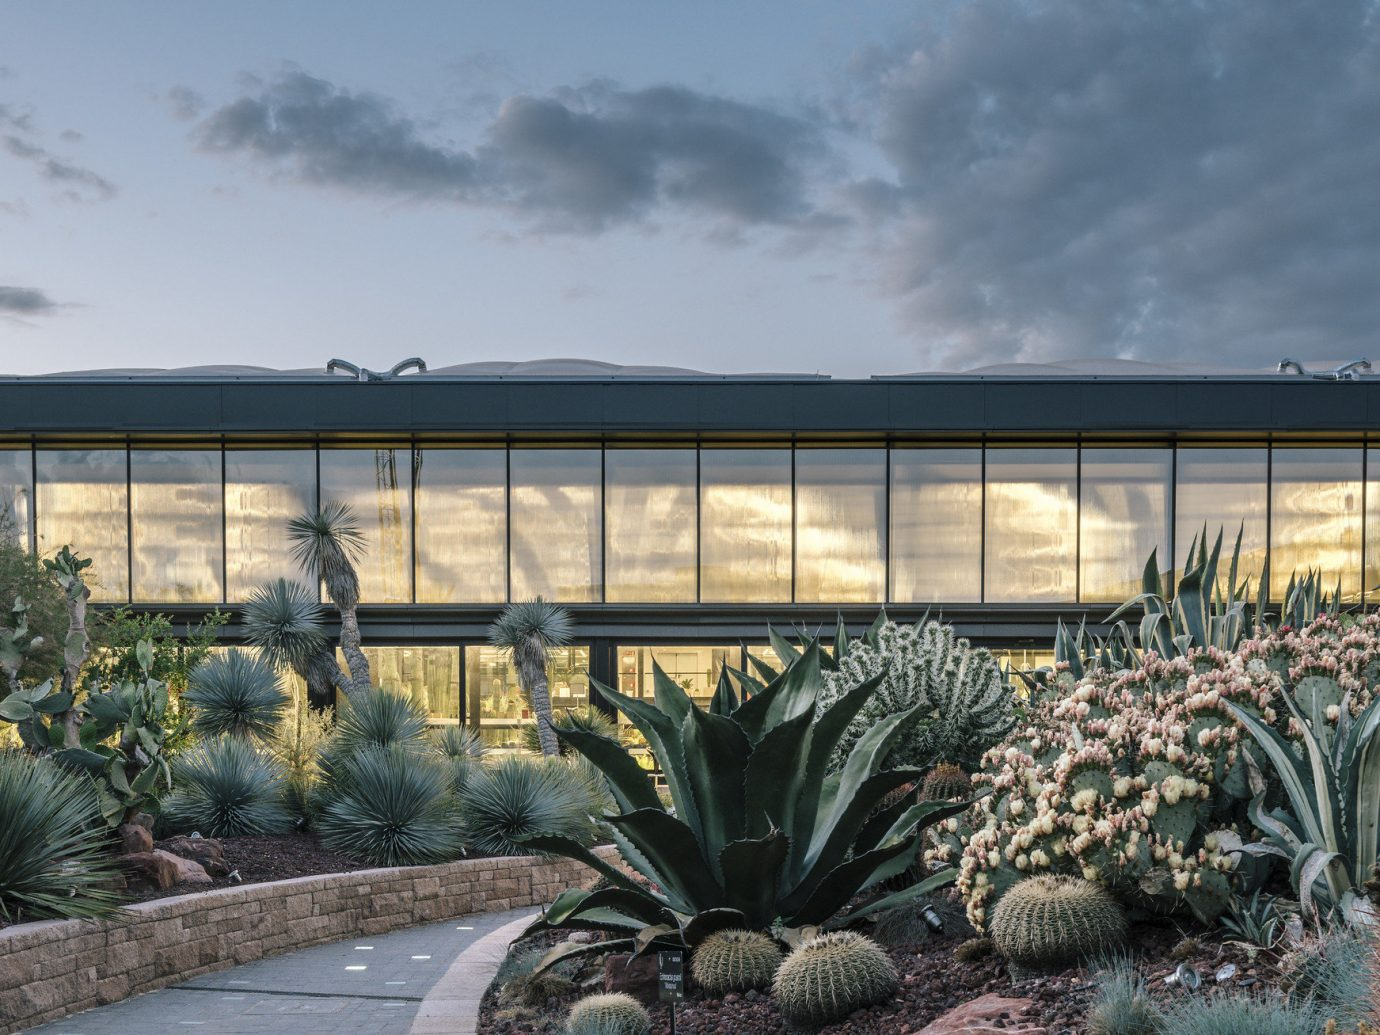 Offbeat Style + Design Travel Trends plant Architecture flower agave landscape cactus real estate sky house outdoor structure landscaping facade tree Garden